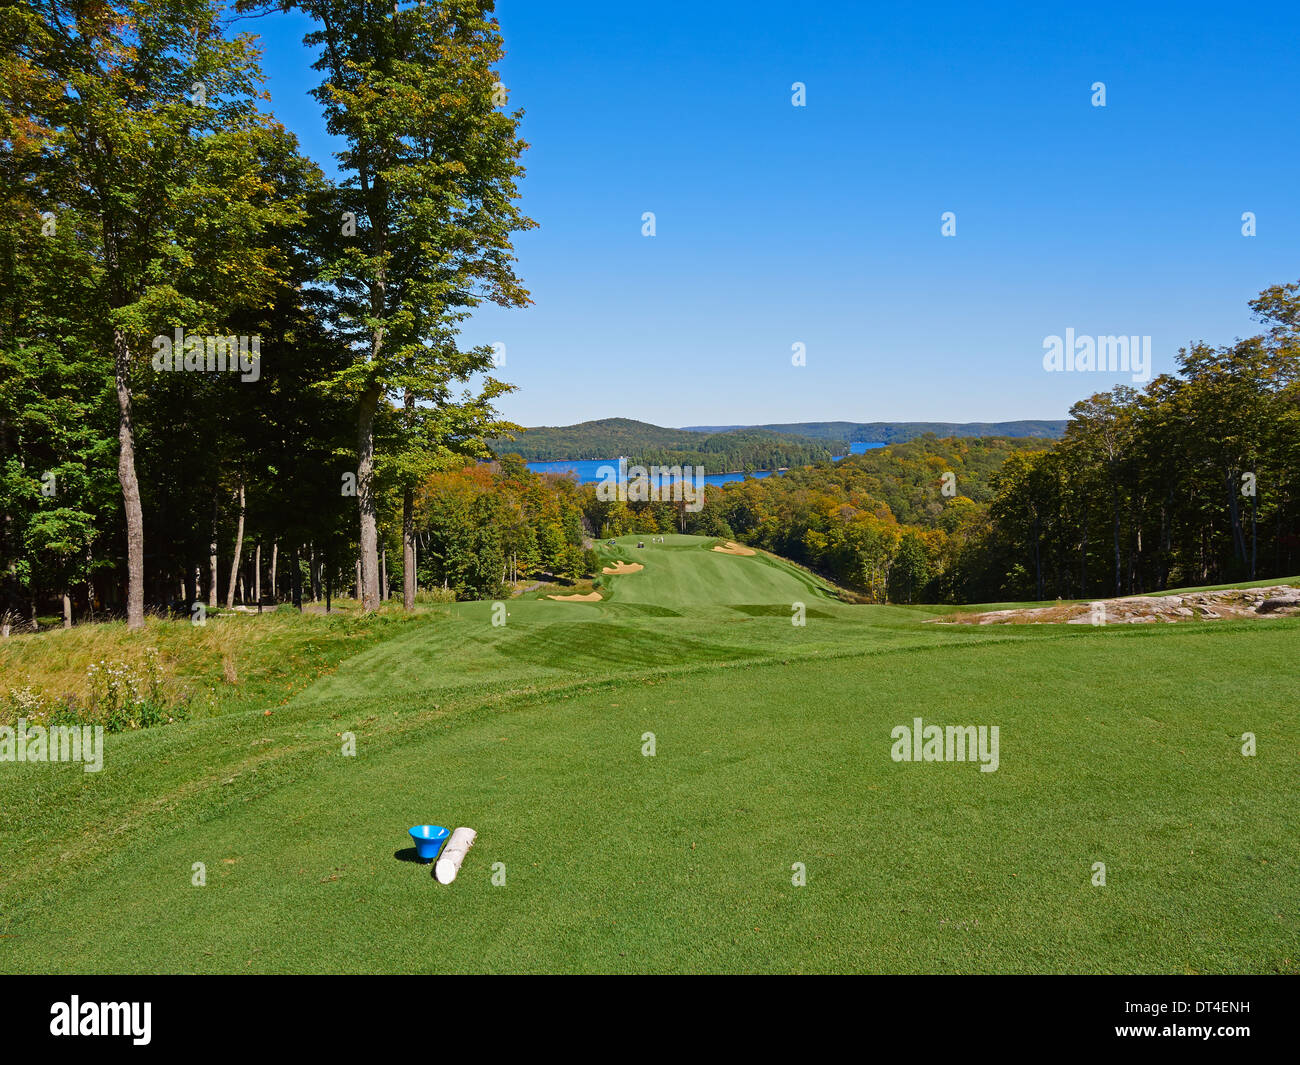 Bigwin Island Golf Course, Lake of Bays, Ontario. Challenging par 72 golf course in an exclusive island resort. - Stock Image